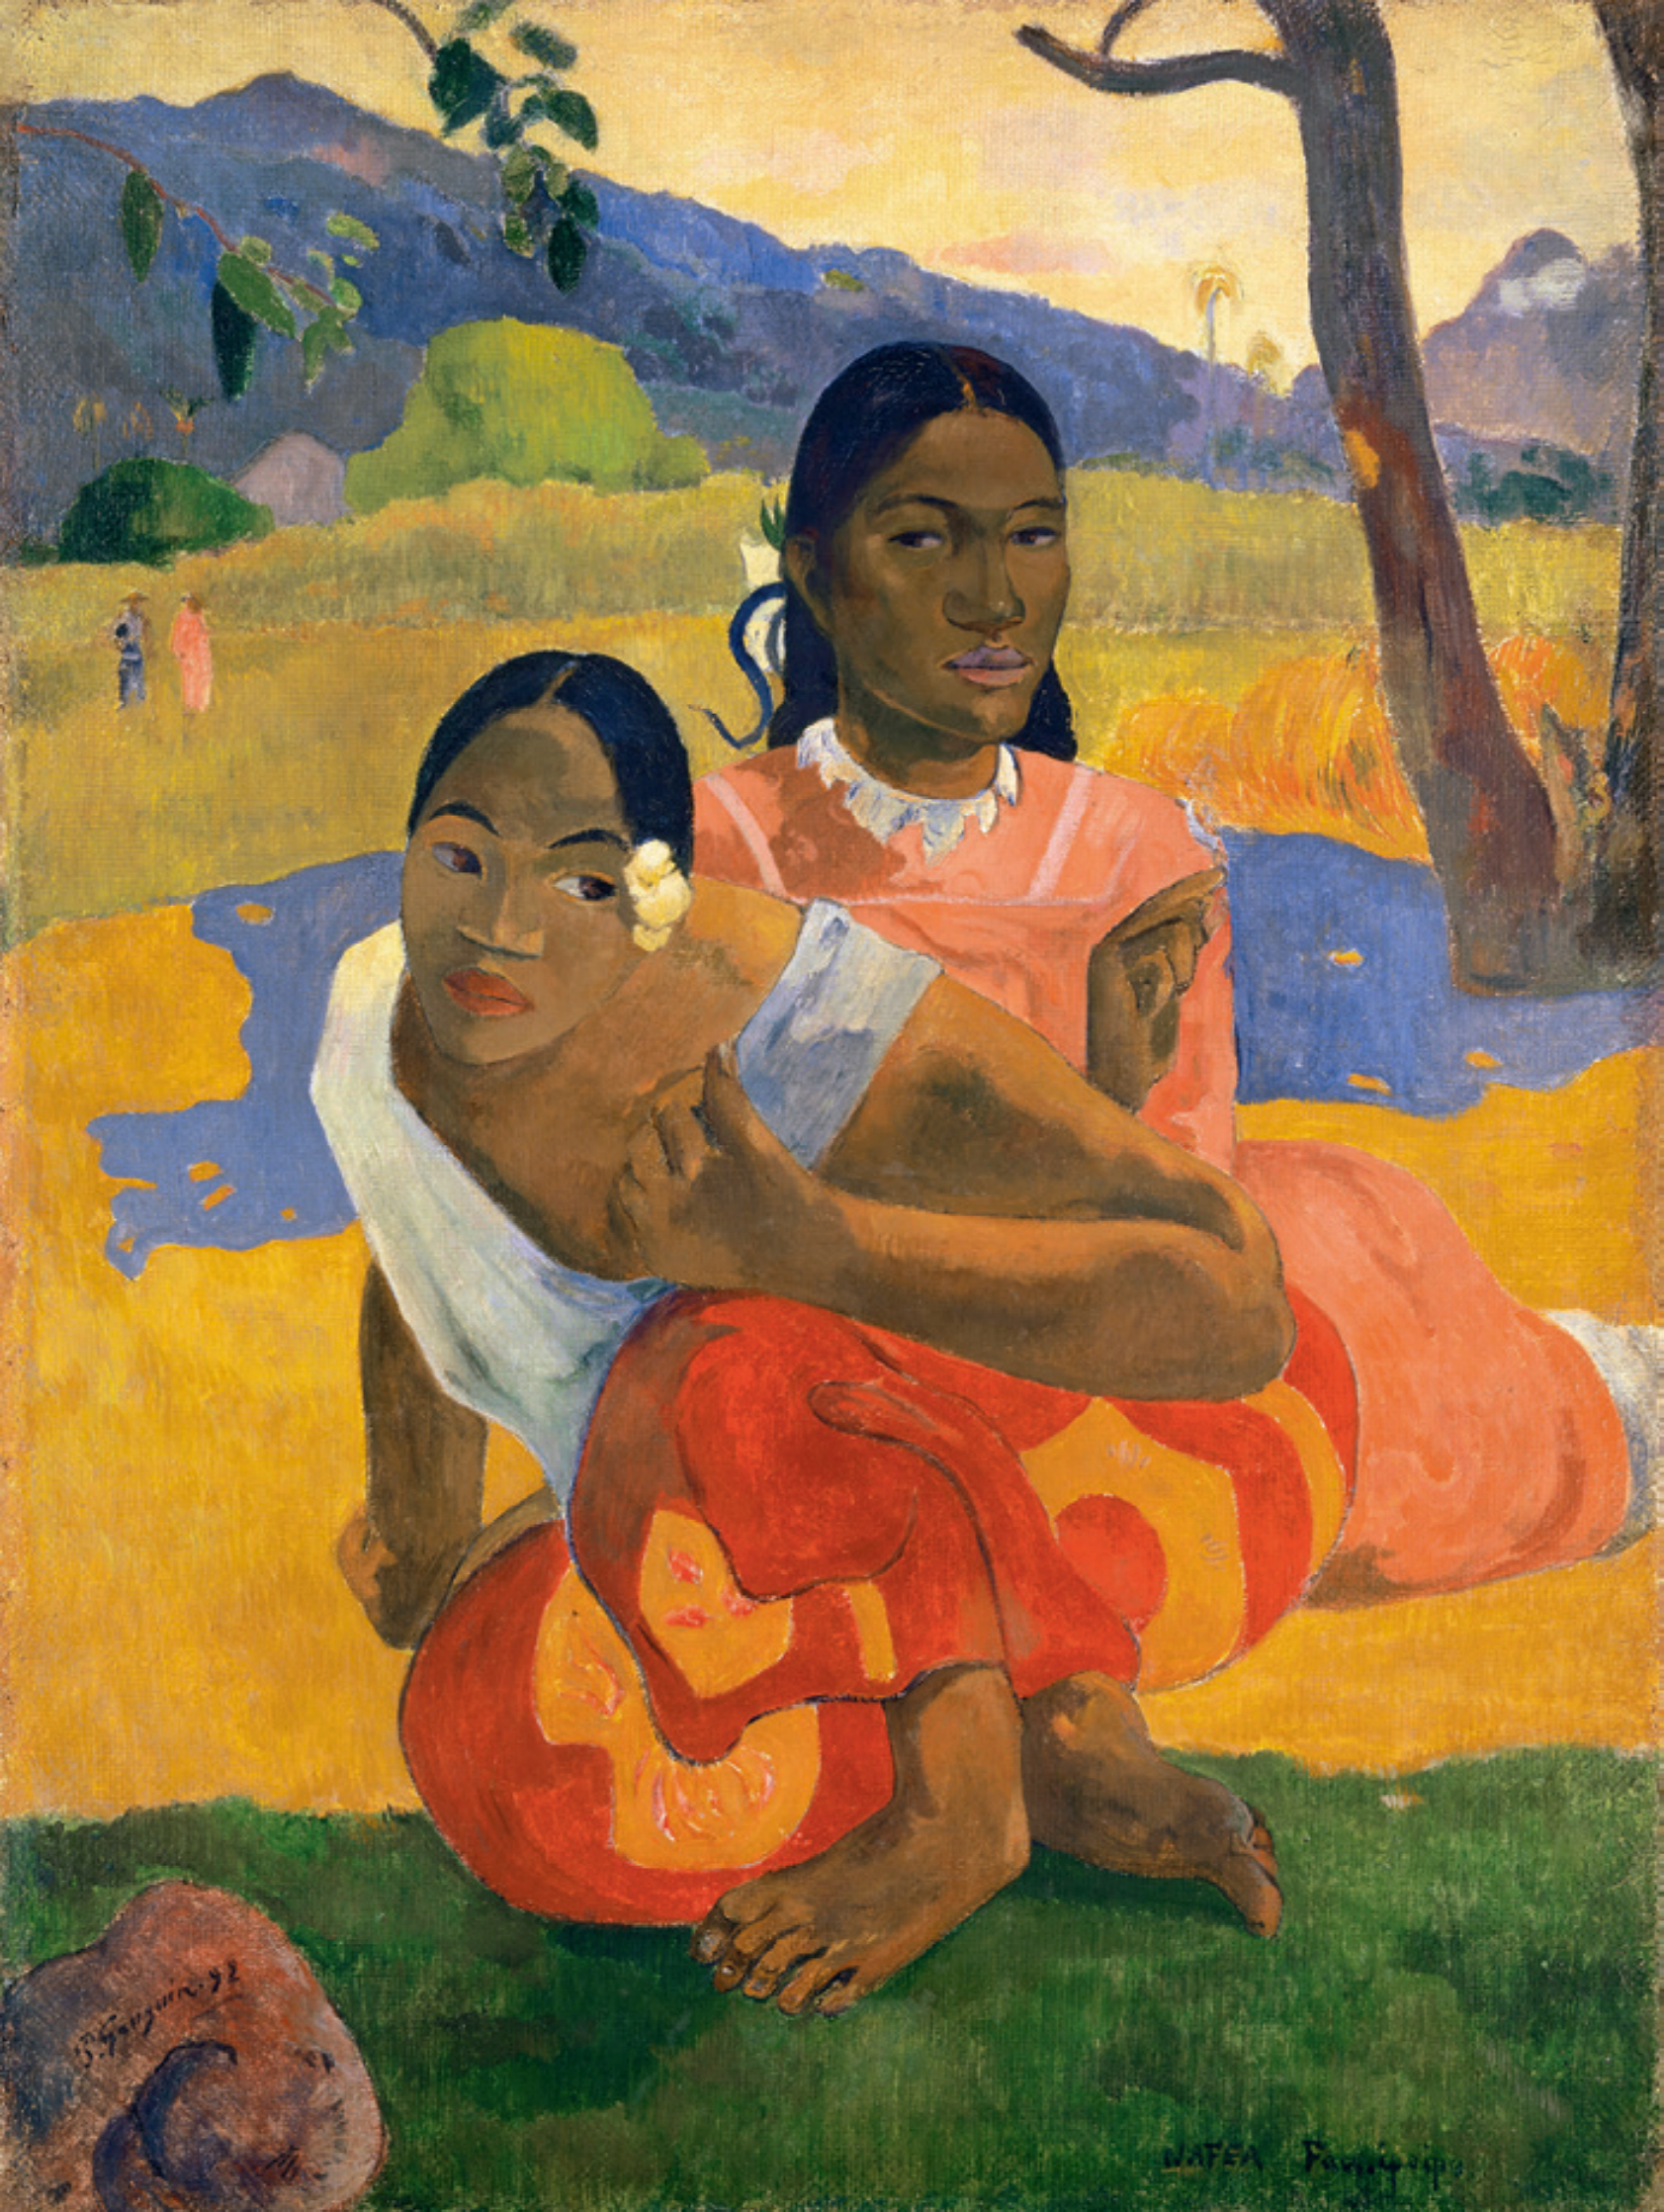 https://upload.wikimedia.org/wikipedia/commons/b/bd/Paul_Gauguin%2C_Nafea_Faa_Ipoipo%3F_%28When_Will_You_Marry%3F%29_1892%2C_oil_on_canvas%2C_101_x_77_cm.jpg